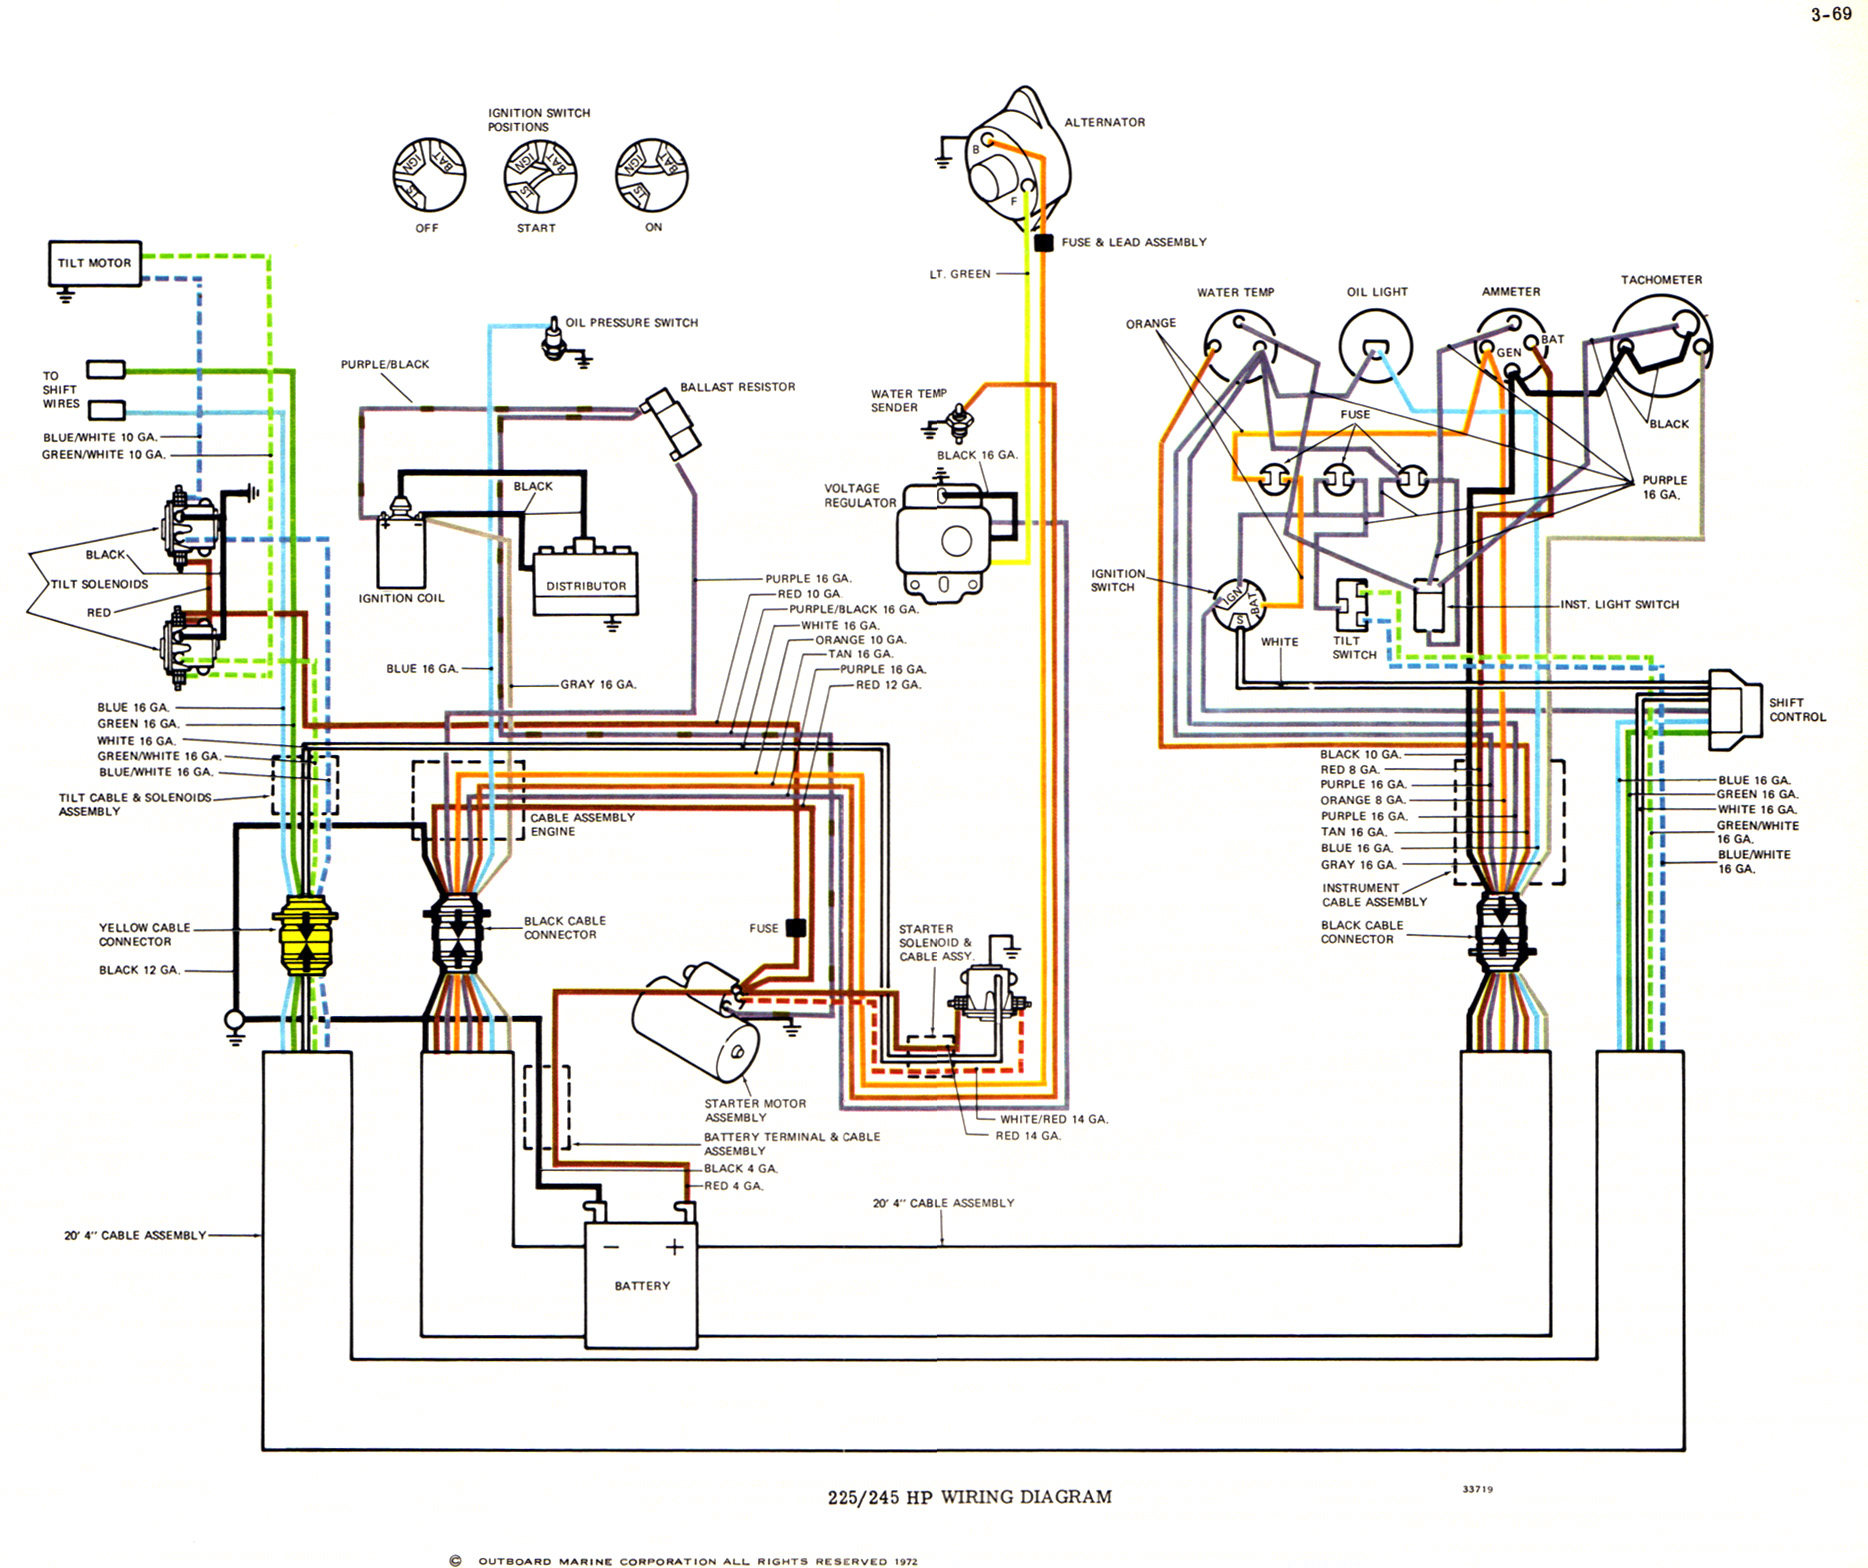 73_OMC_V8_all_big omc wiring diagram 1967 johnson 40 wiring diagram \u2022 wiring yamaha ttr 225 wiring diagram at soozxer.org